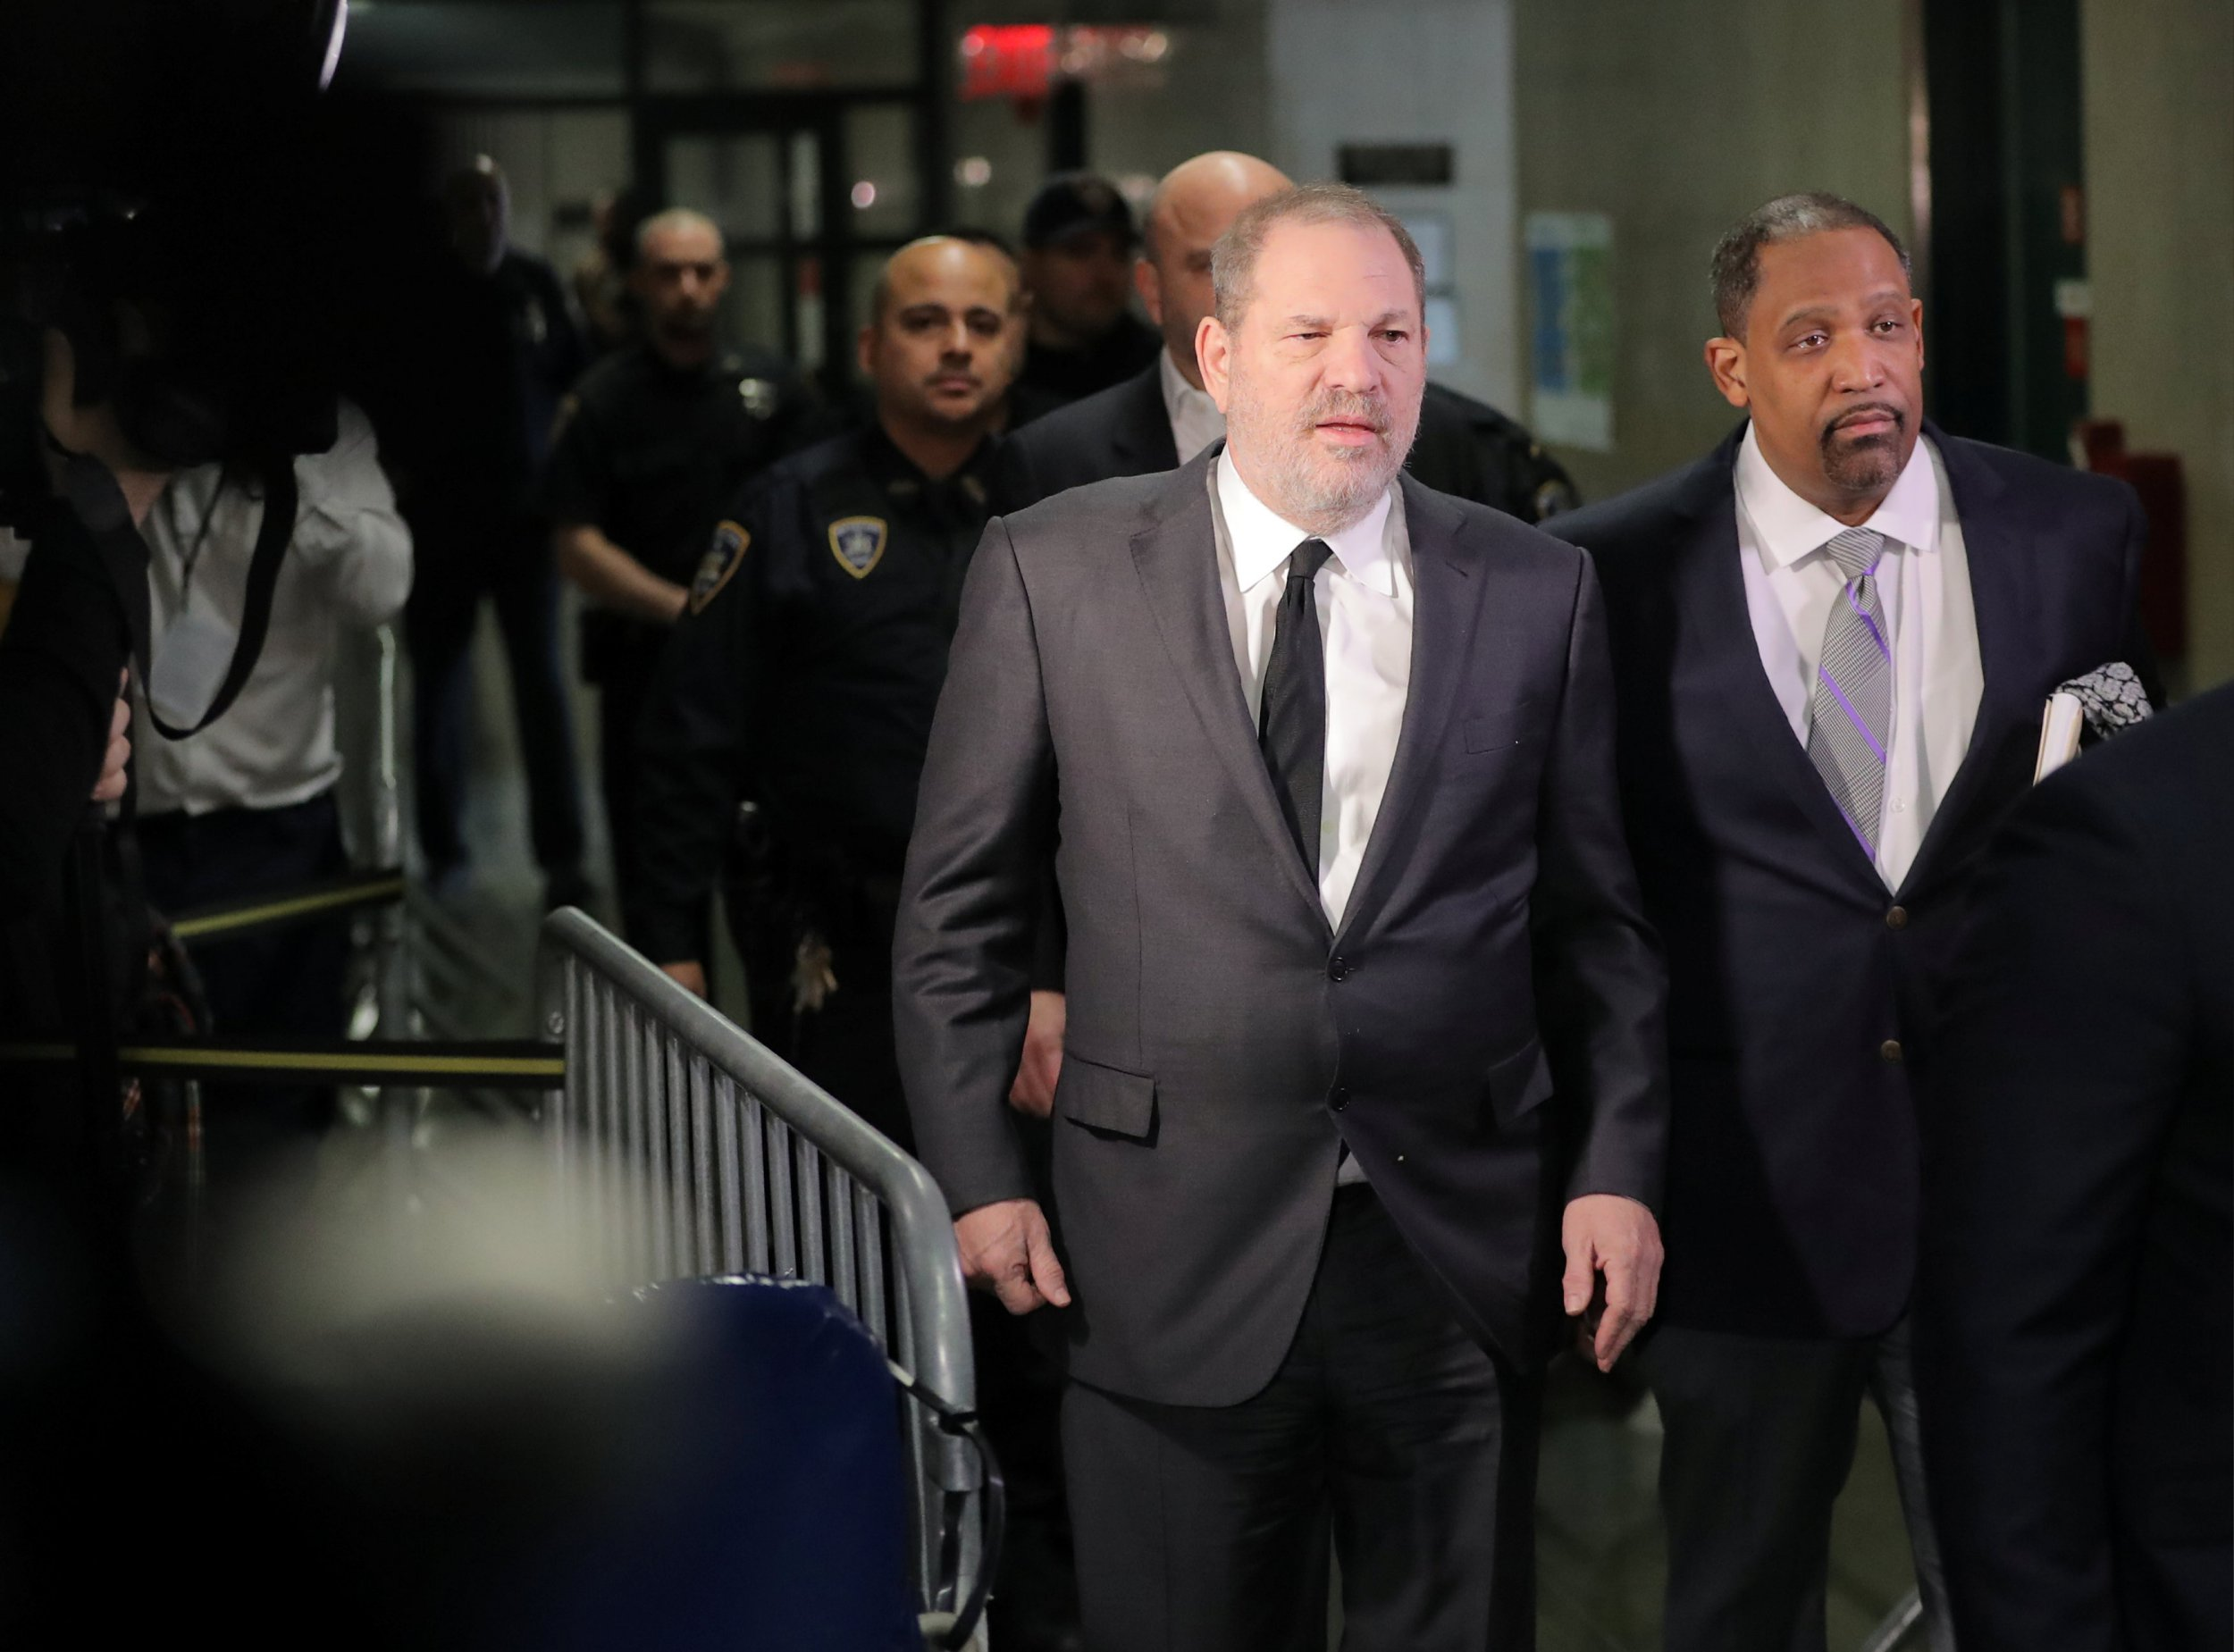 Film producer Harvey Weinstein, arrives for a hearing at New York Supreme Court in the Manhattan borough of New York City, U.S., January 25, 2019. REUTERS/Brendan McDermid